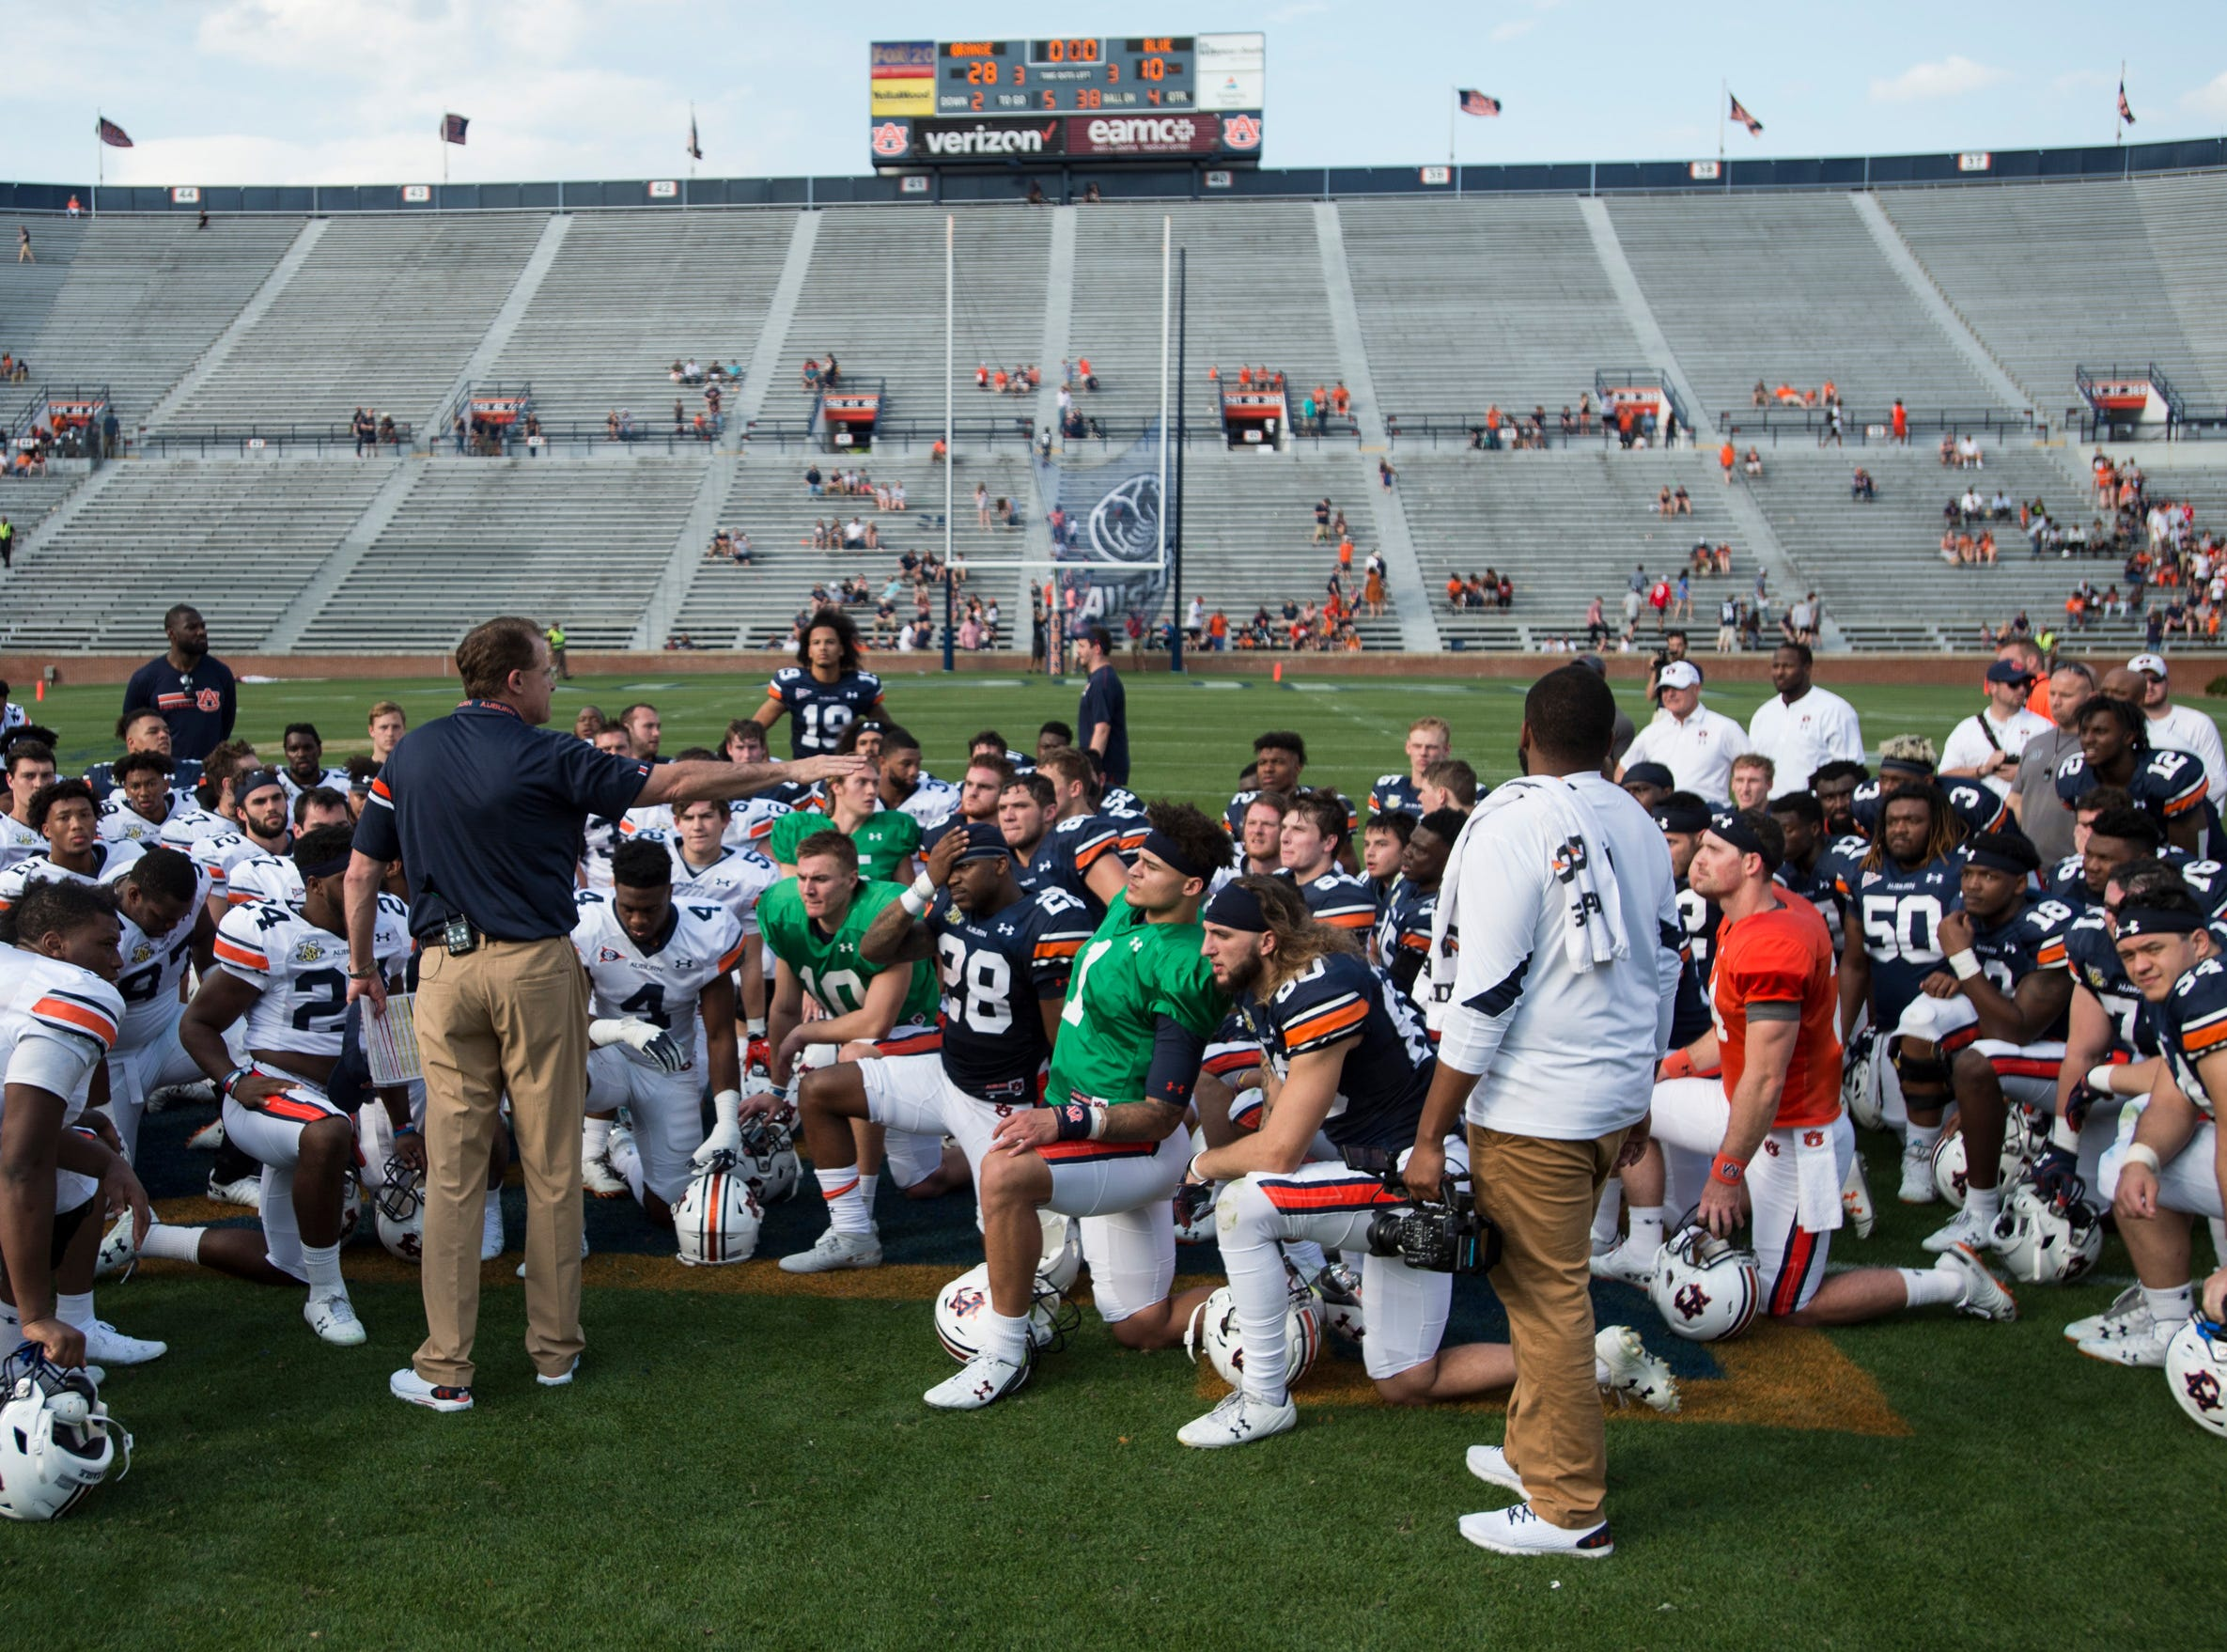 Auburn head coach Gus Malzahn talks with his team after the game during the A-Day spring practice gameat Jordan-Hare Stadium in Auburn, Ala., on Saturday, April 13, 2019.